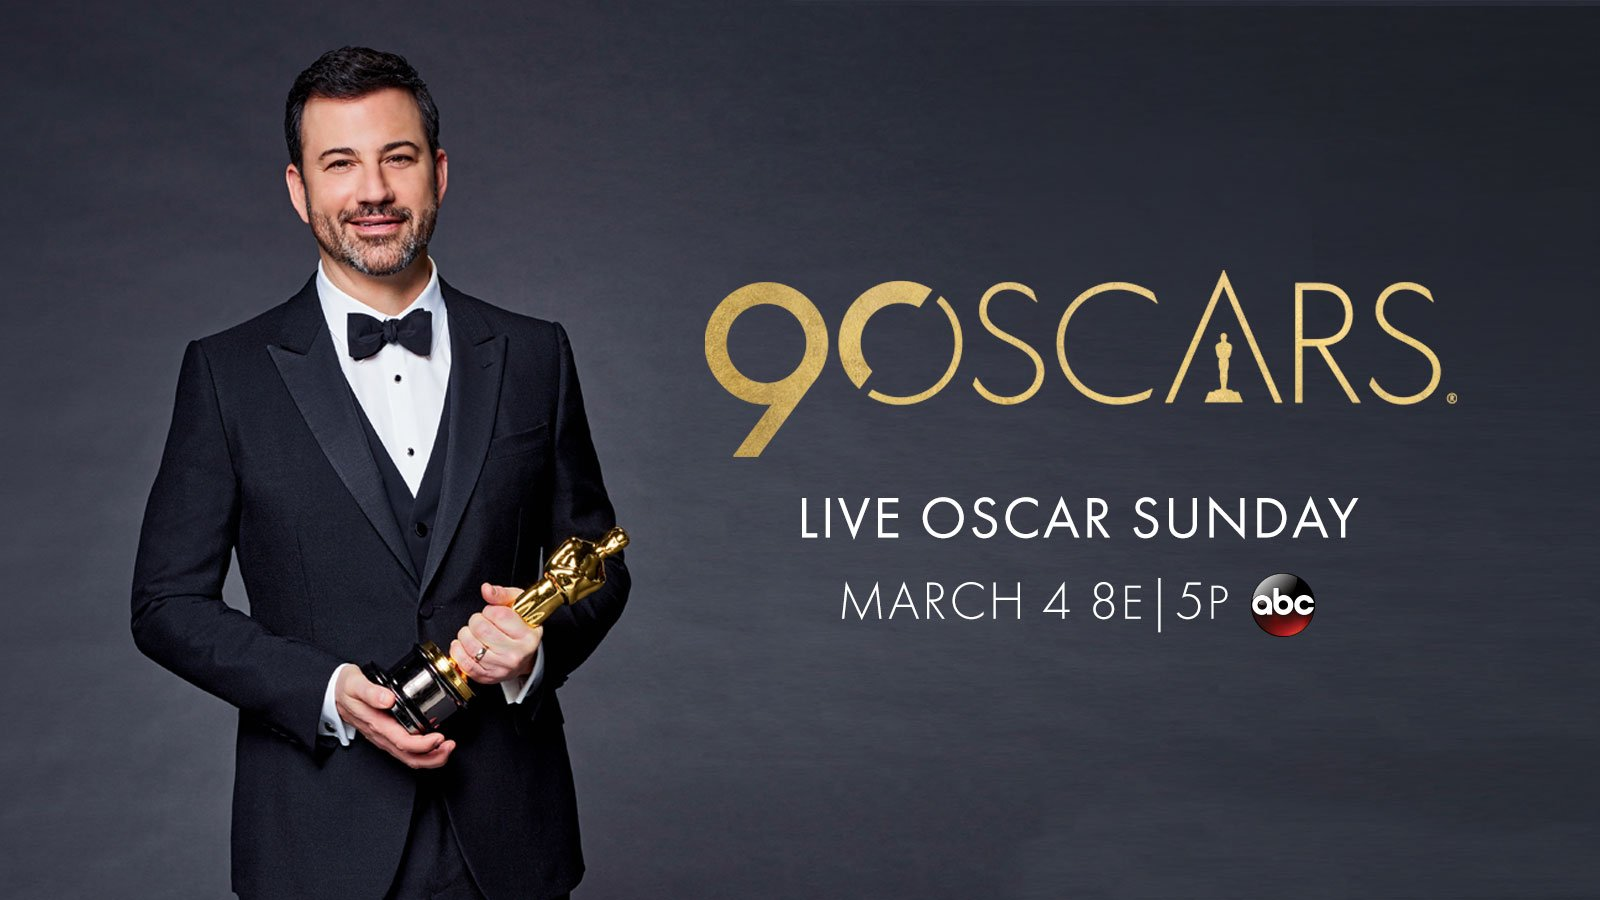 #Oscars90 #Oscars #Oscars2018 - APHERALD LIVE UPDATES - You can watch it ONLINE HERE !!